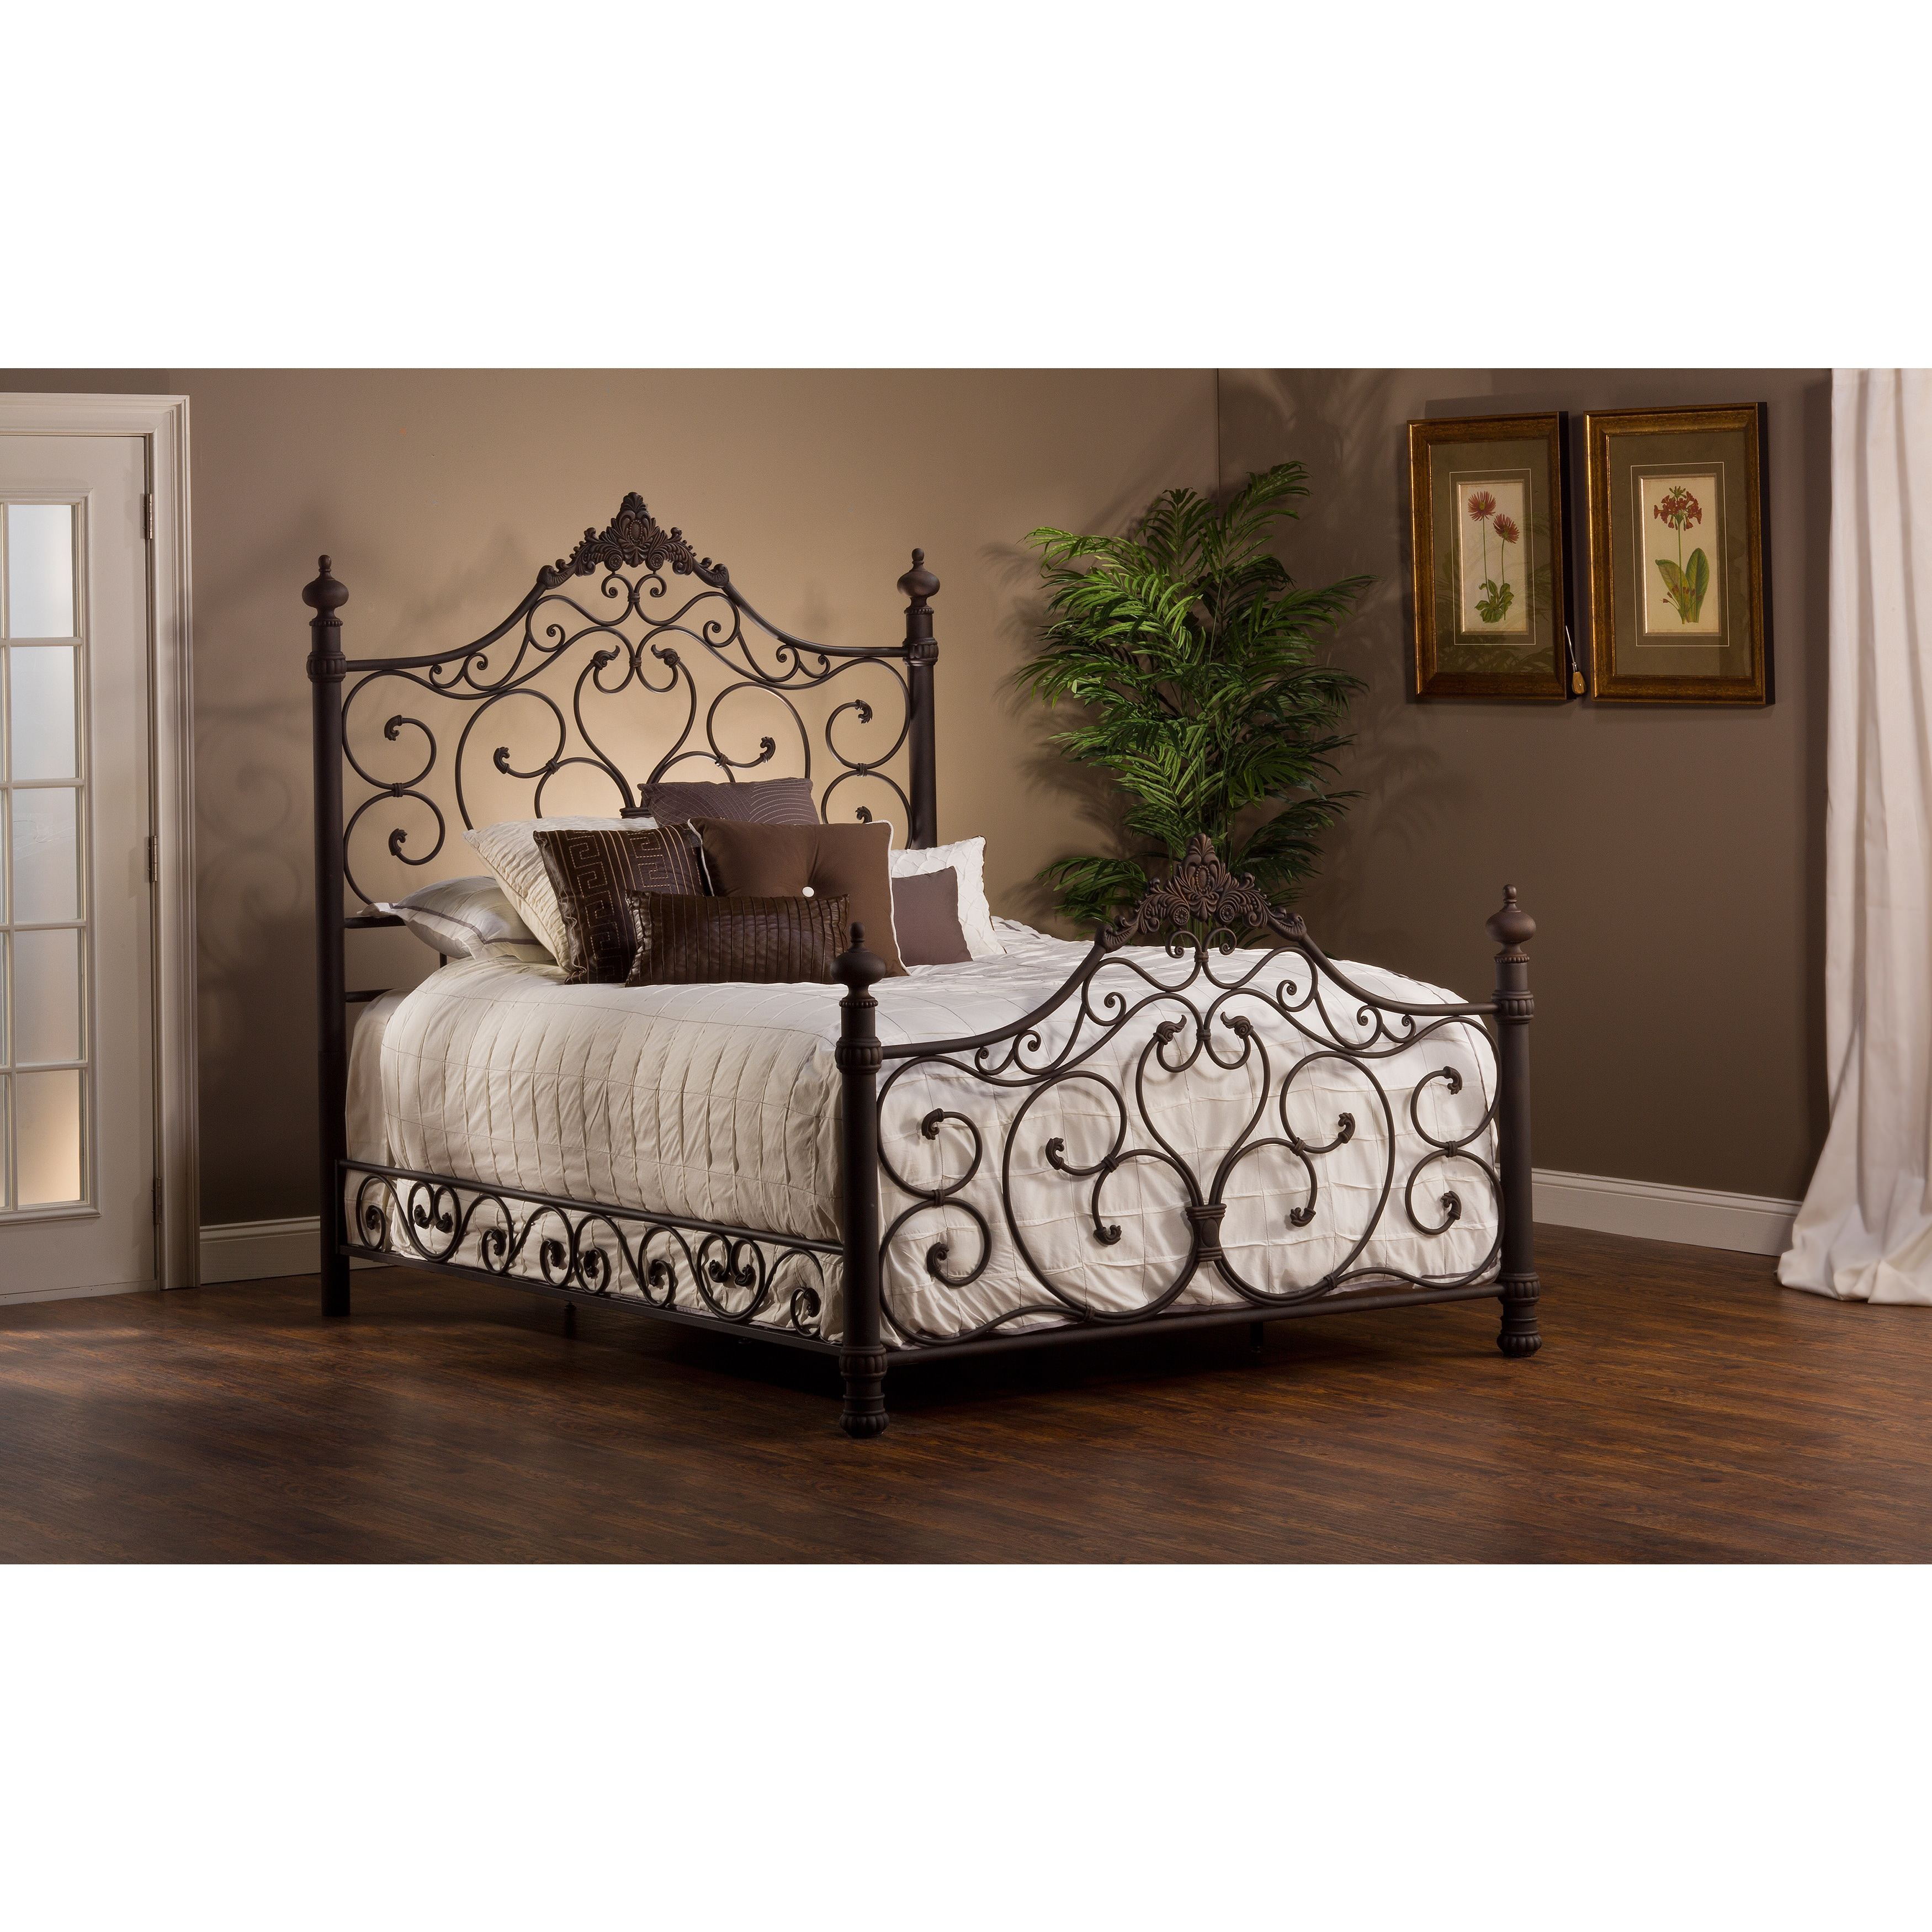 Shop Baremore Antique Brown Bed Set   On Sale   Free Shipping Today    Overstock.com   9237832